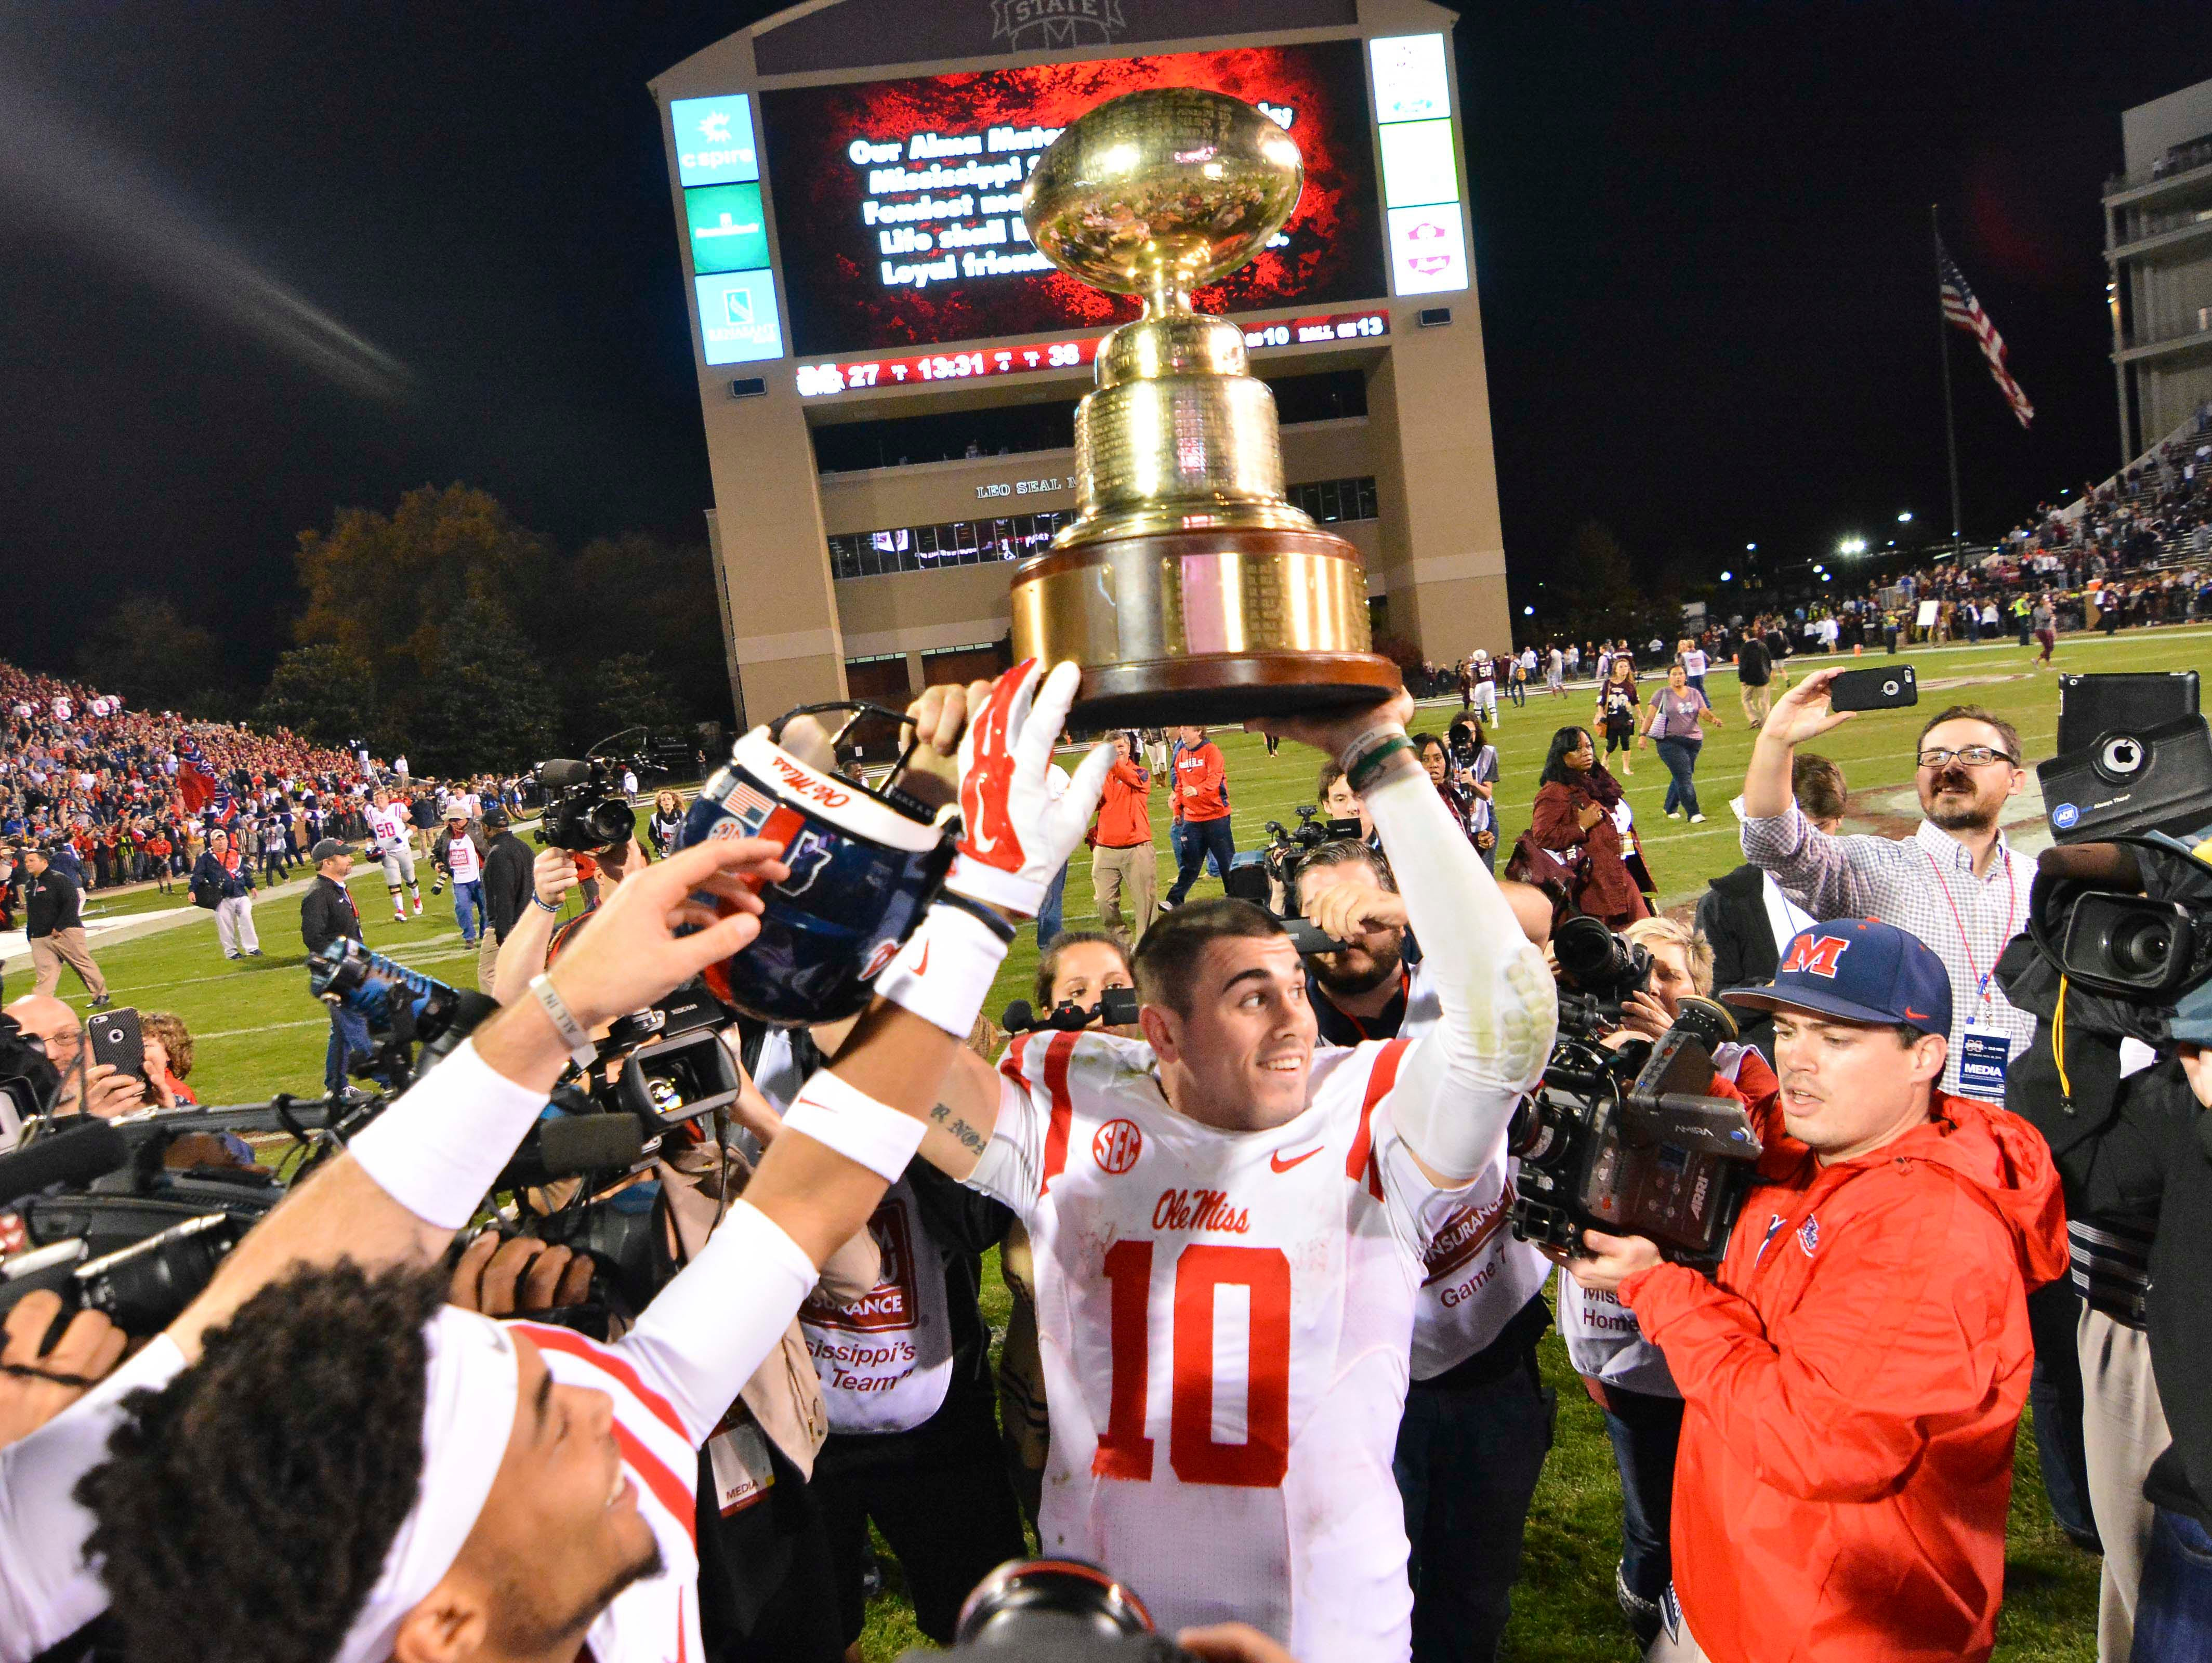 Ole Miss is heading to the Sugar Bowl for the first time since 1970.